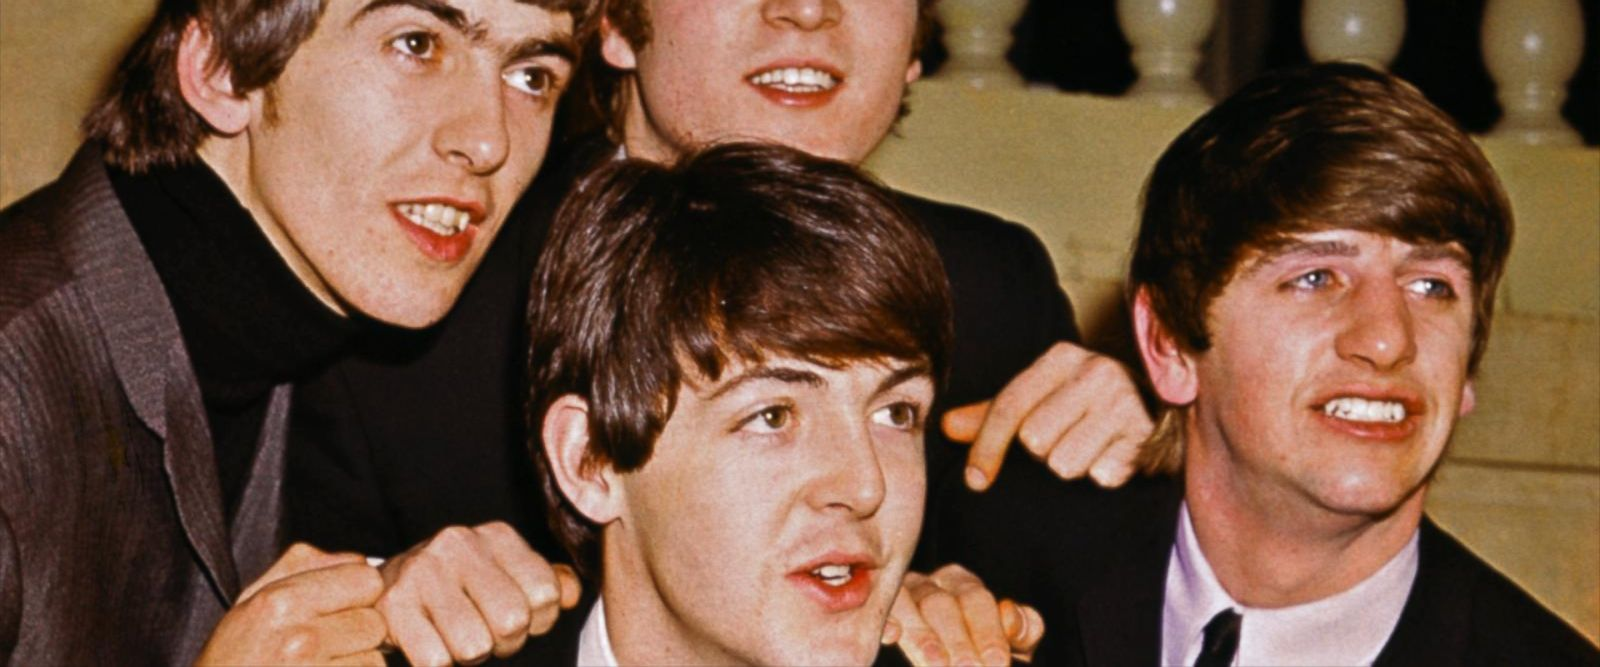 VIDEO: The Beatles: In a minute